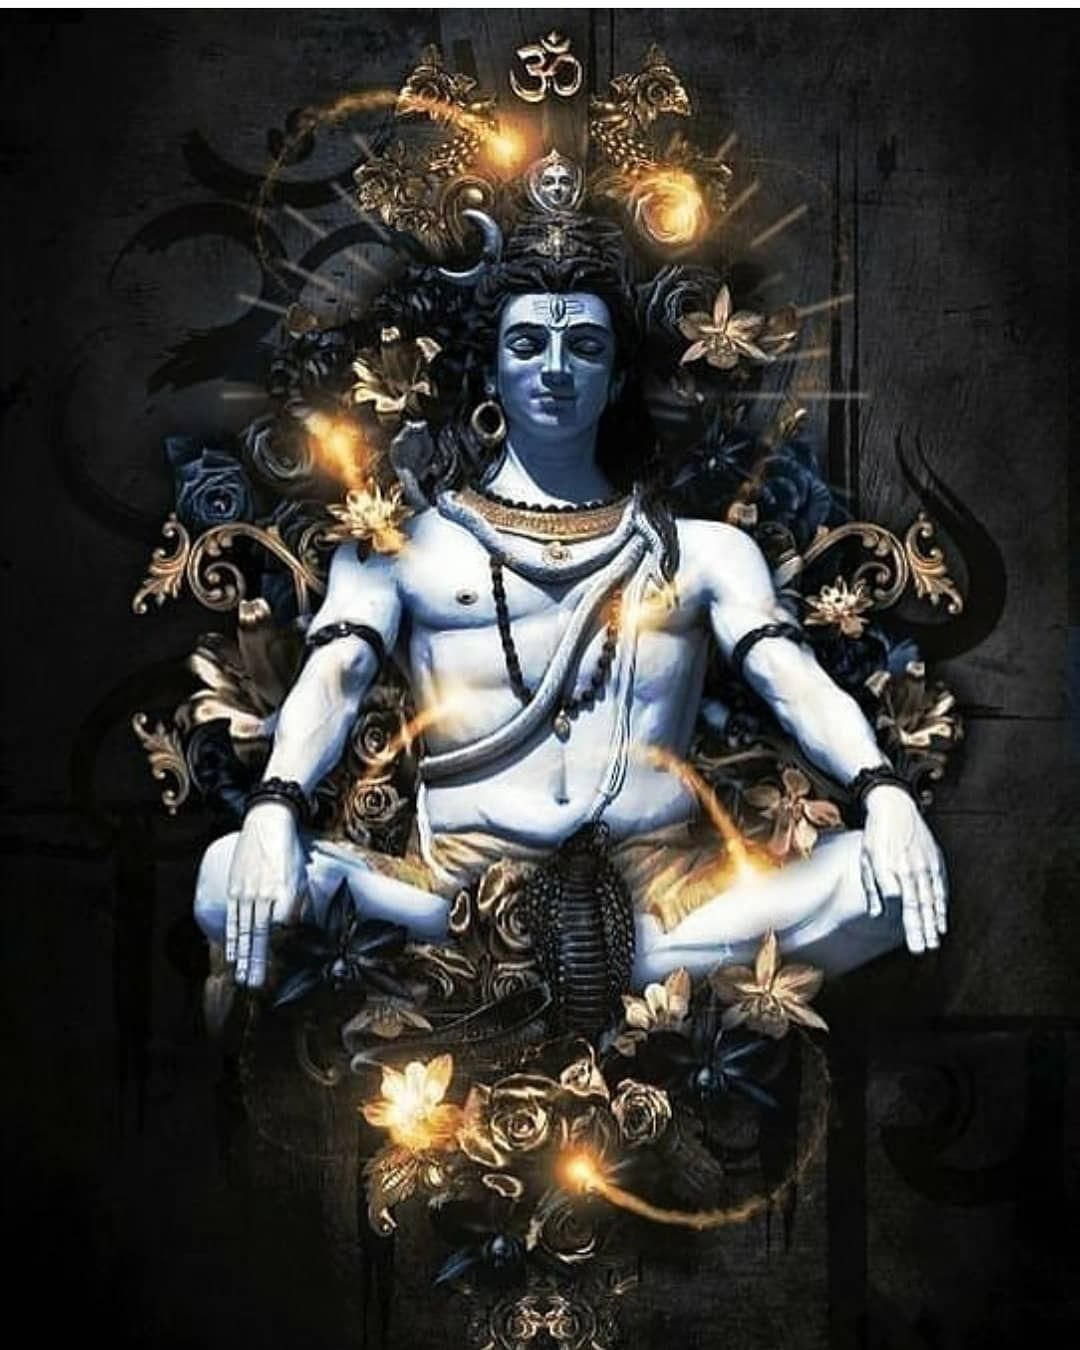 280 Har Har Mahadev Full Hd Photos 1080p Wallpapers Download Free Images 2020 Happy New Year 2020 Images Quotes Wis In 2020 Lord Shiva God Shiva Shiva Tandav